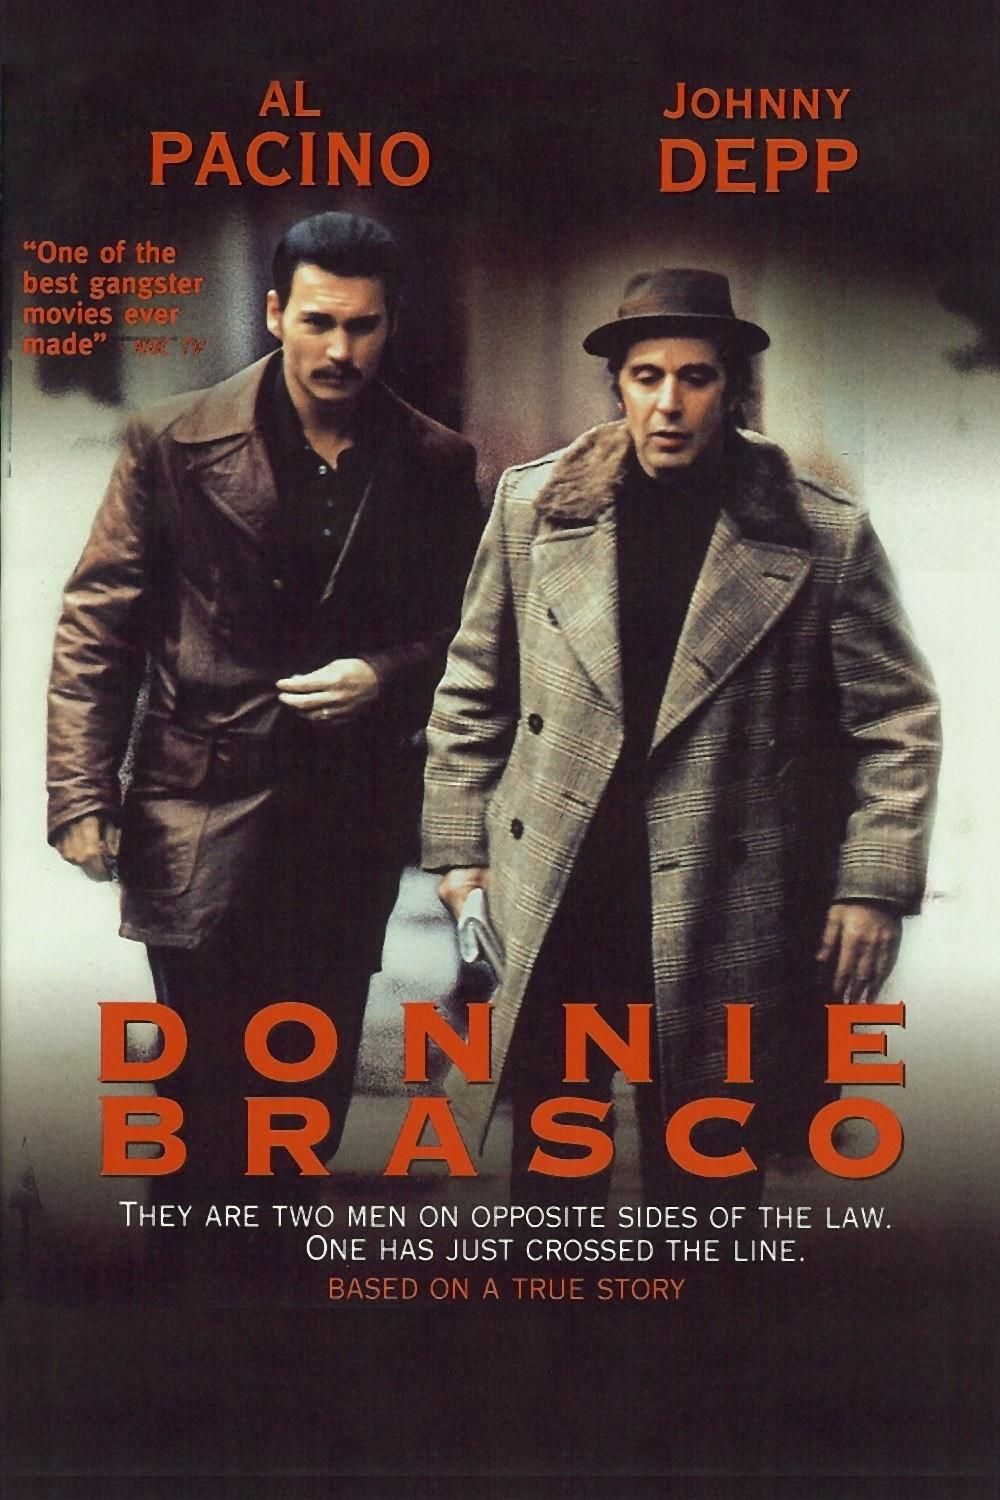 a movie analysis of donnie brasco starring al pacino and johnny depp Johnny depp: donnie brasco/joe pistone: al pacino: it's depp's least quirky starring role to date it was a great movieand al pacino and johnny depp was.